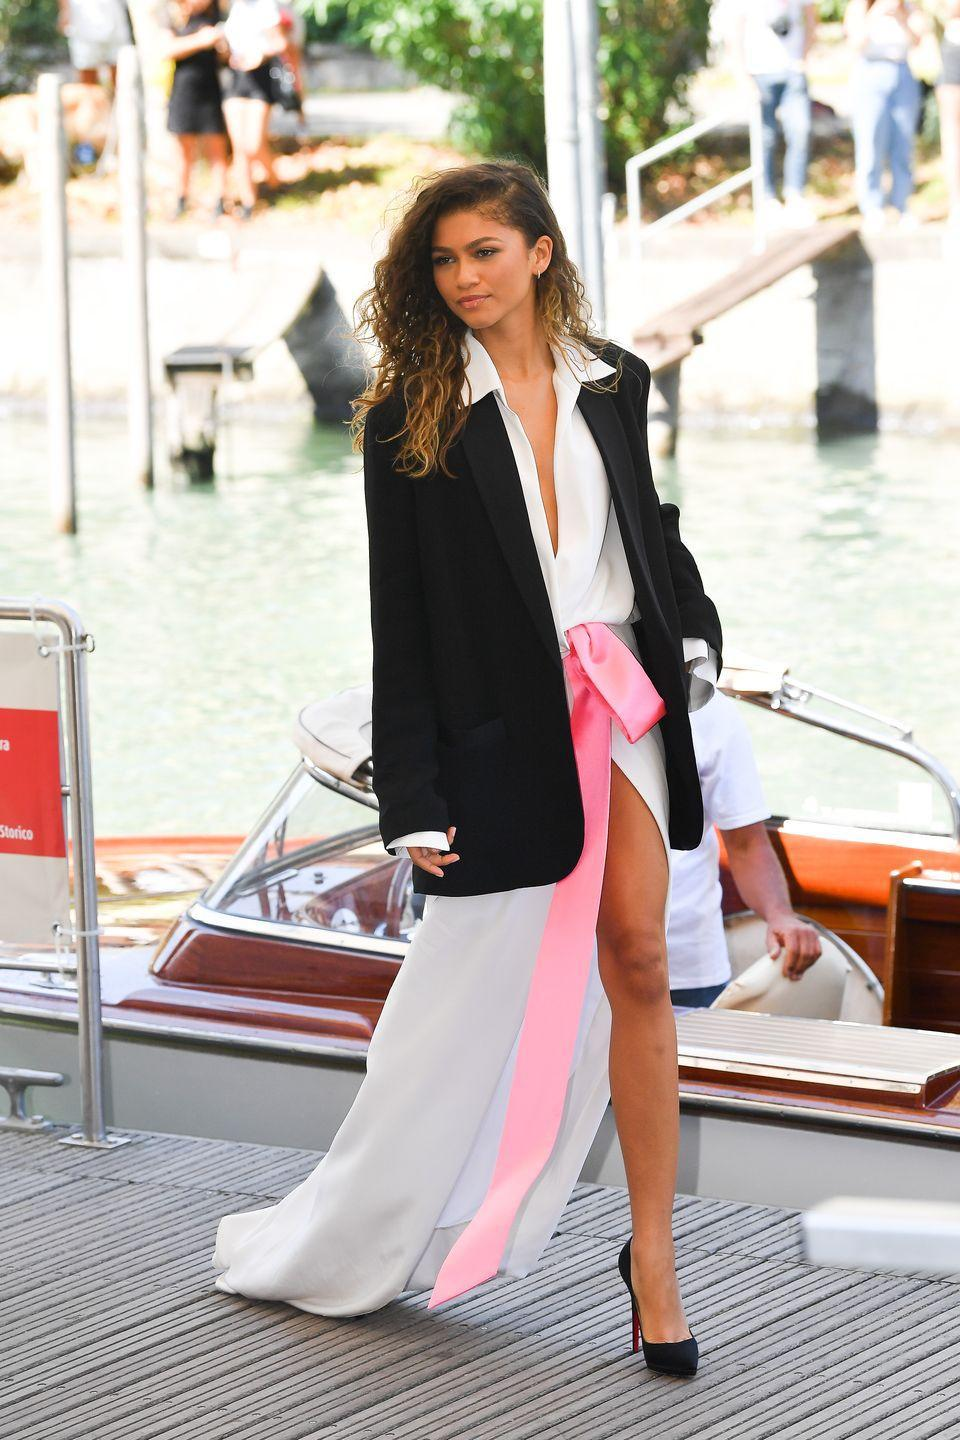 <p>Zendaya looked as chic and elegant as ever in a shirt dress with a pink satin bow around the waist which she teamed with an oversized black blazer.</p>